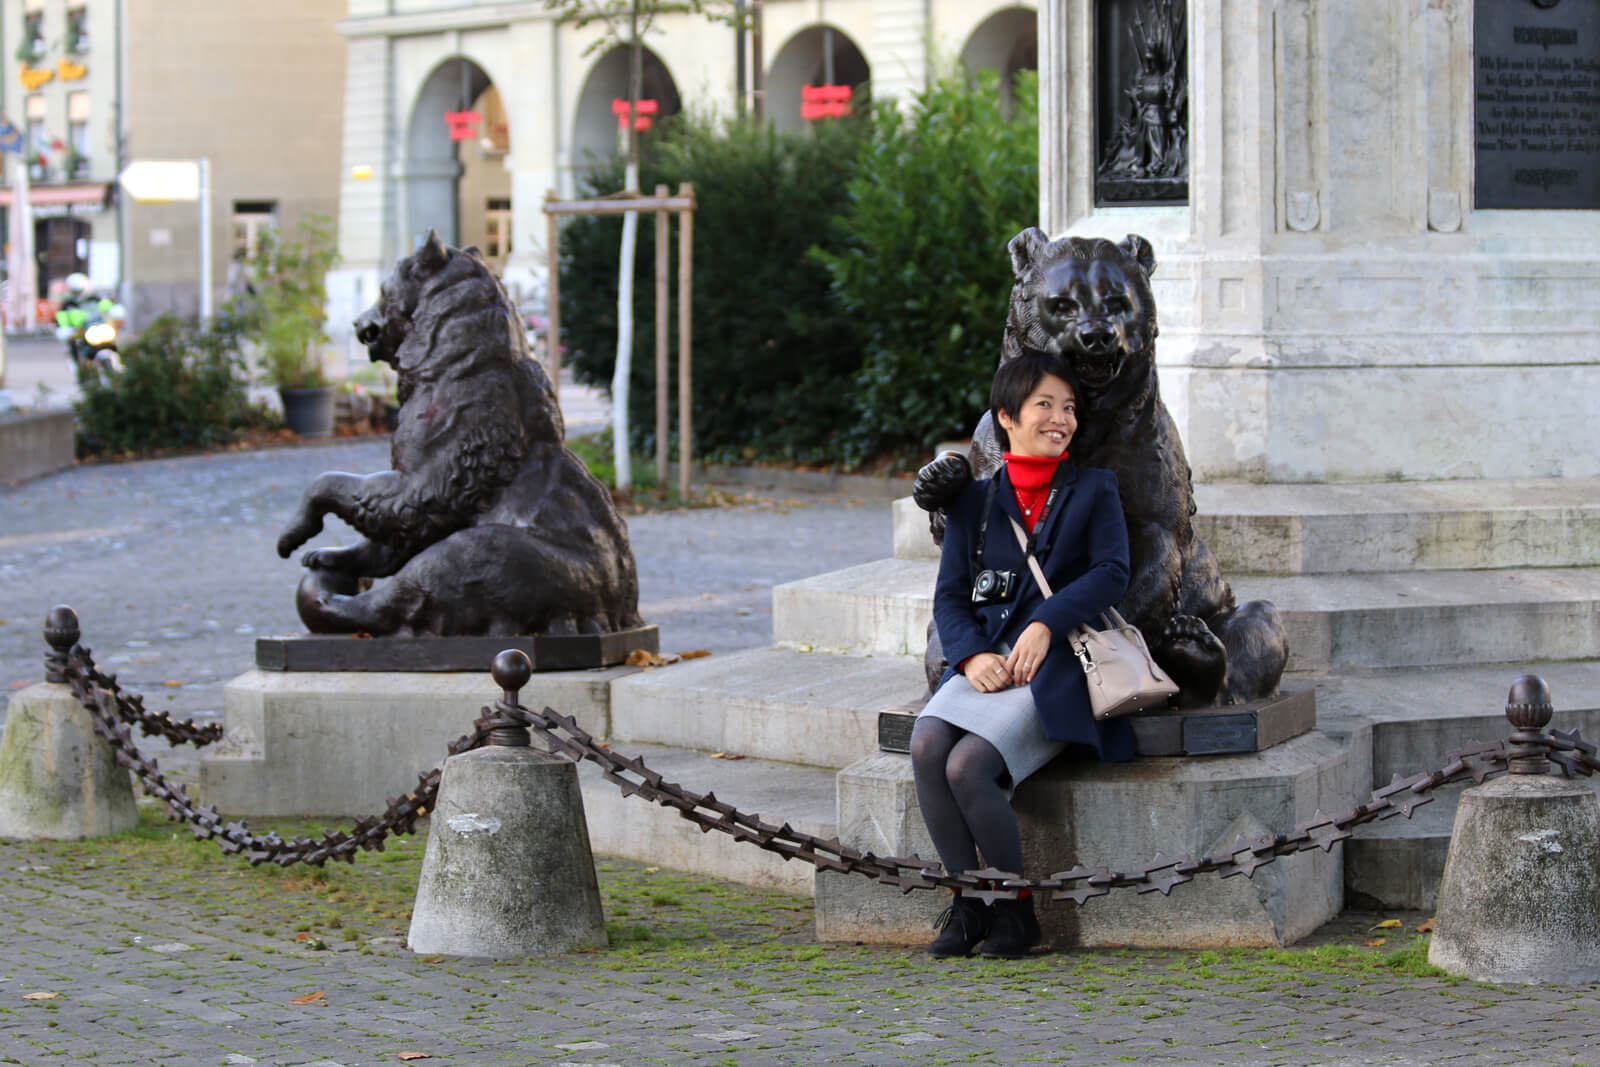 Bear Statues in the Old Town of Bern